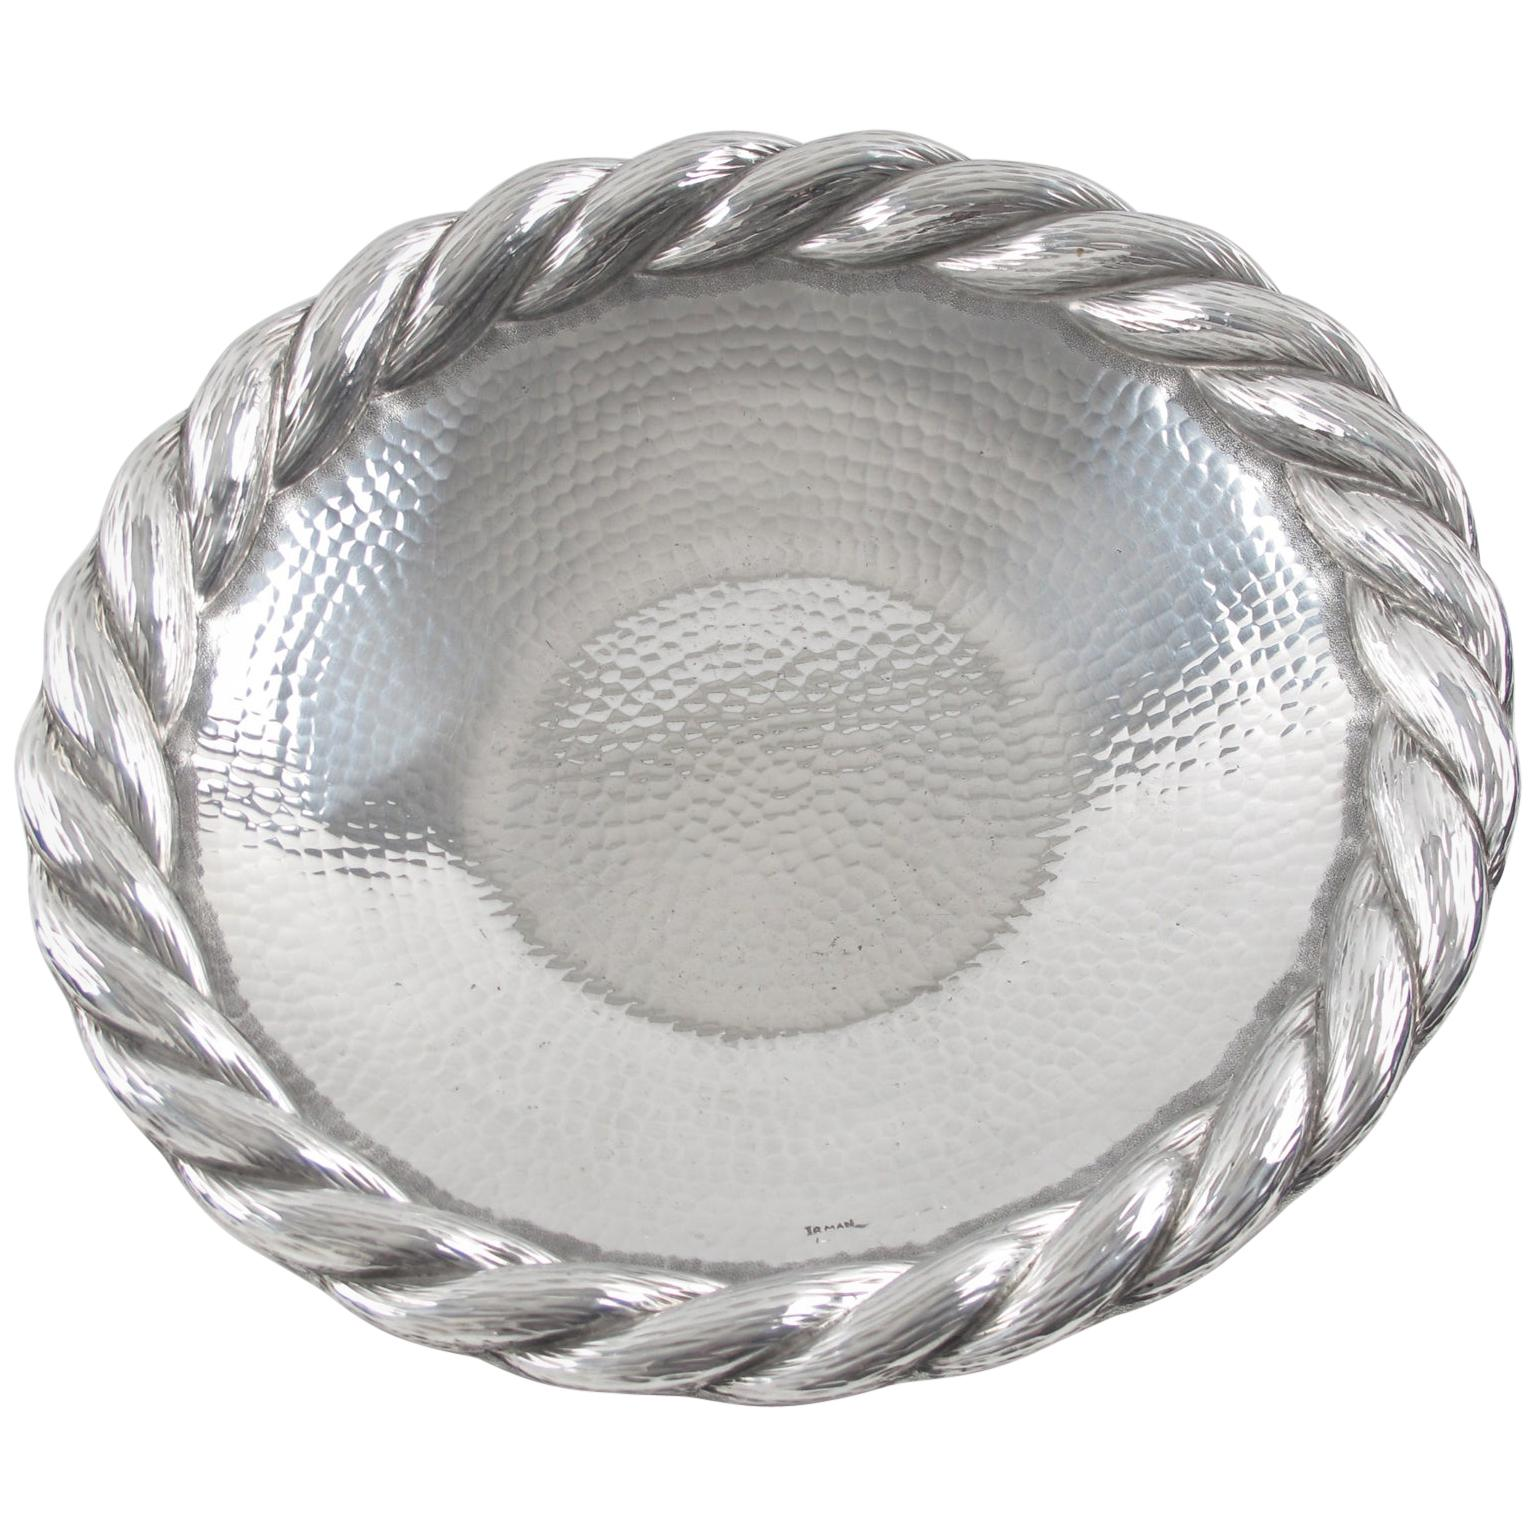 Art Deco Aluminum Platter Barware Tray by Irman France